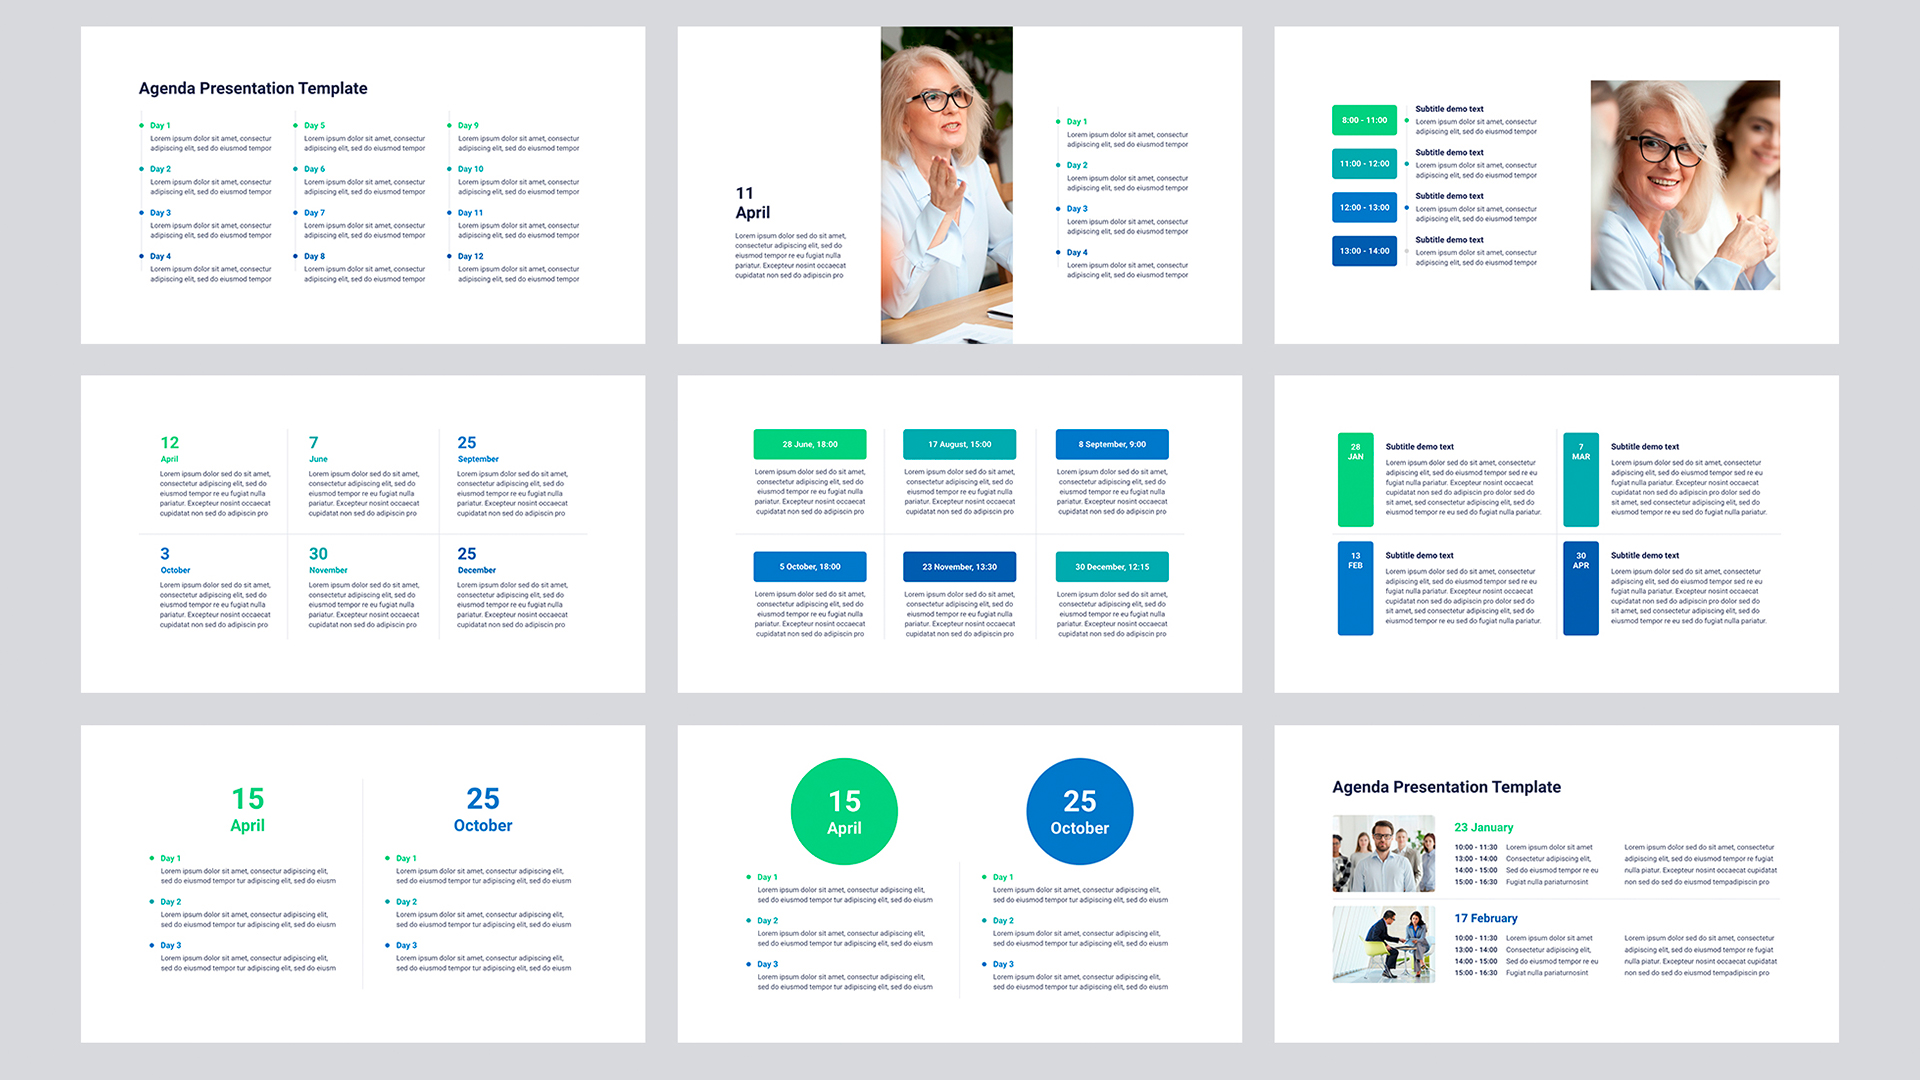 Business Agenda template PowerPoint - Download Now!